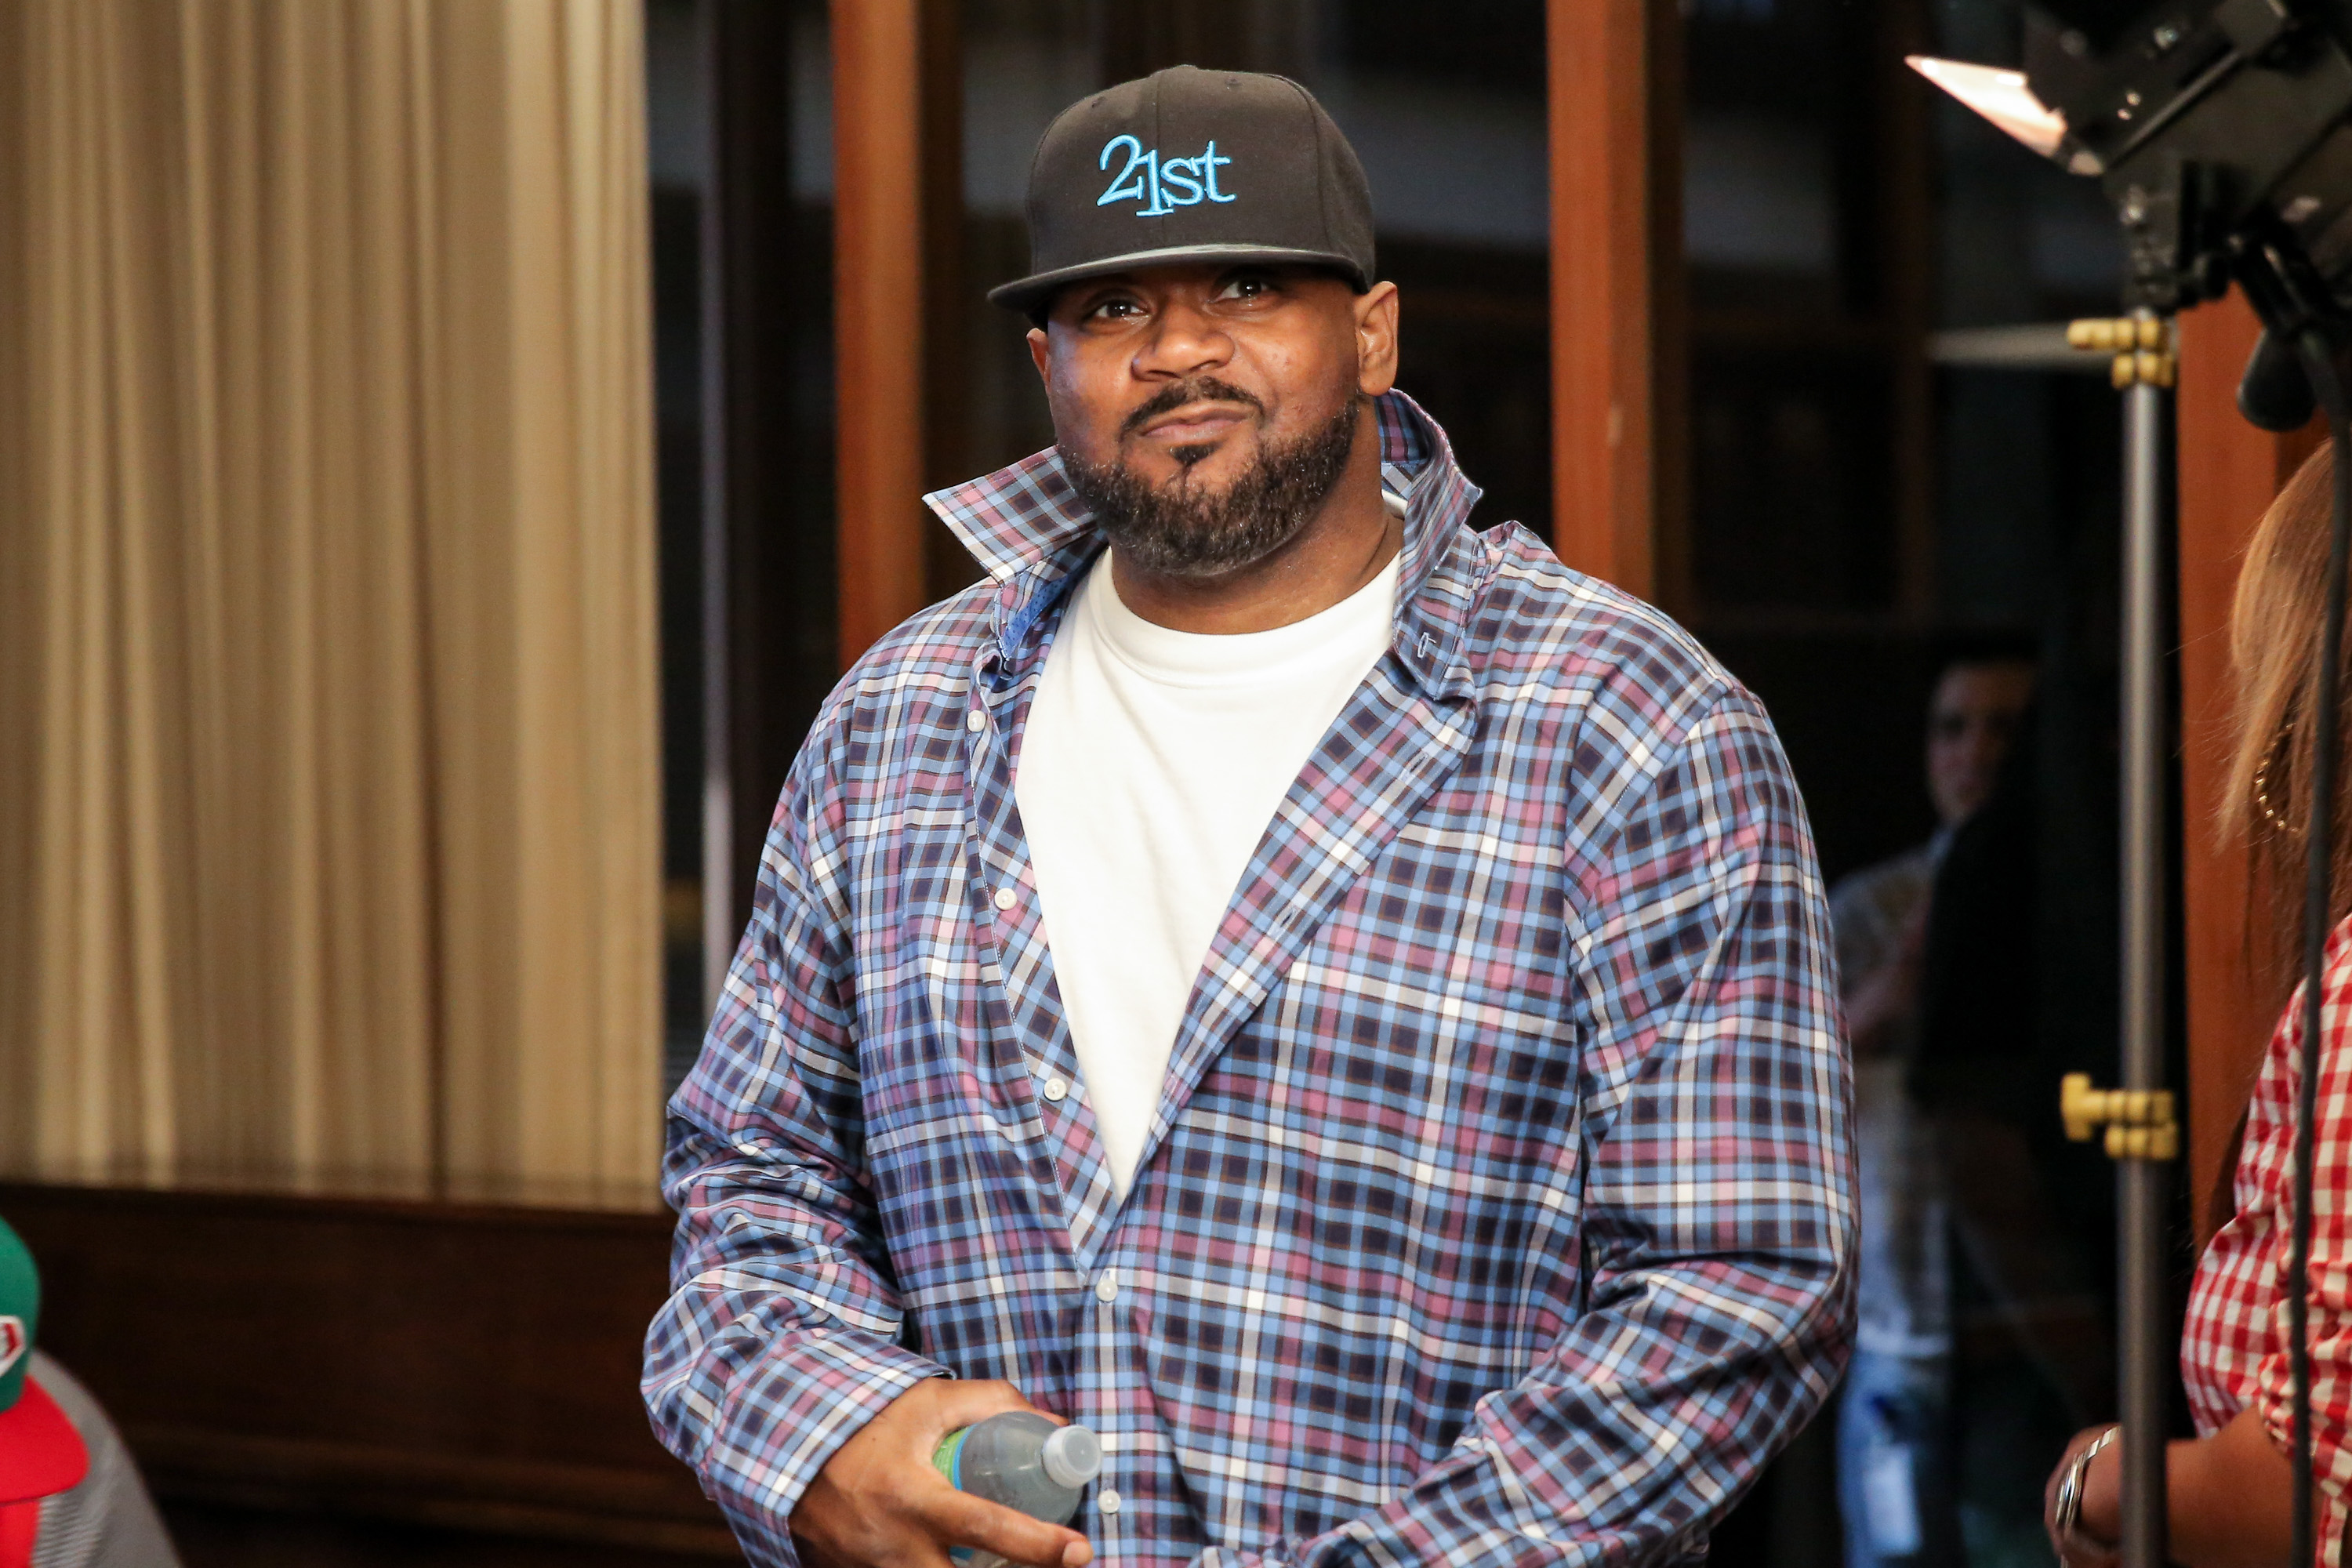 Rapper Ghostface Killah of the Wu-Tang Clan attends a press conference to announce that the Wu-Tang Clan has signed with Warner Bros.